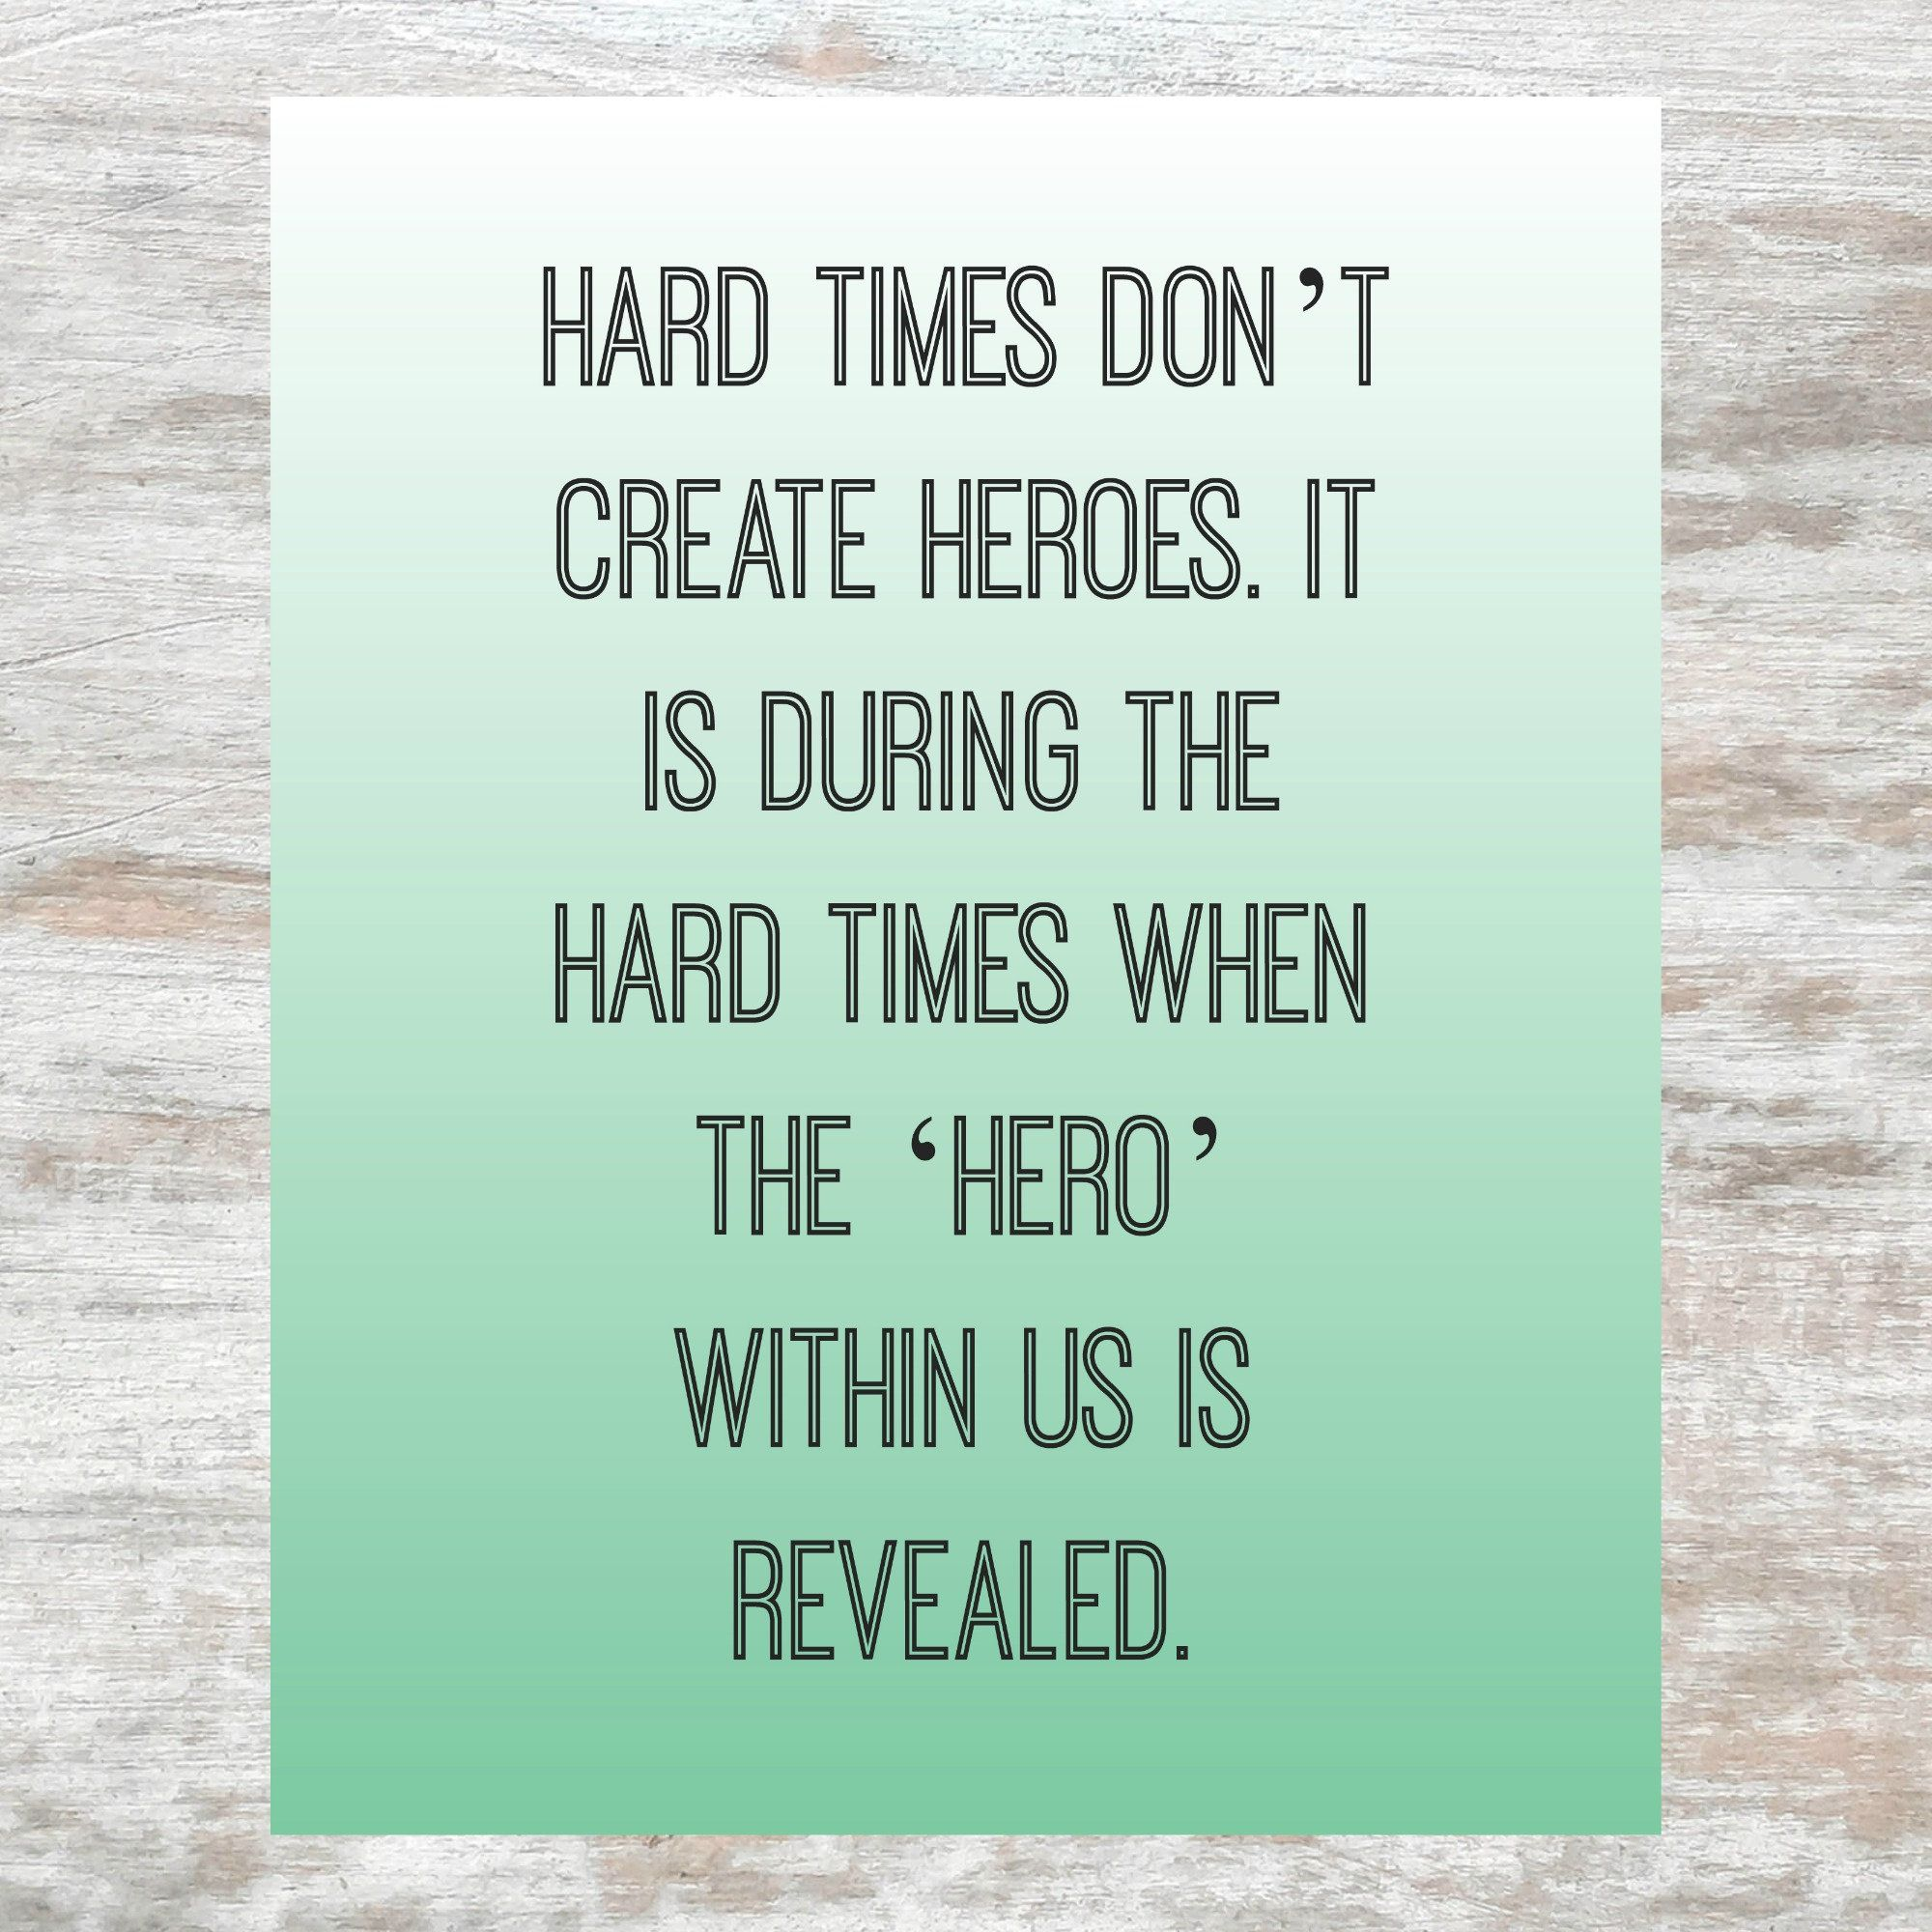 Hard Times Don T Create Heroes It Is During The Hard Times When The Hero Within Us Is Revealed Quote Printable Bob Riley Printable Quotes Inspirational Printables Motivational Printables